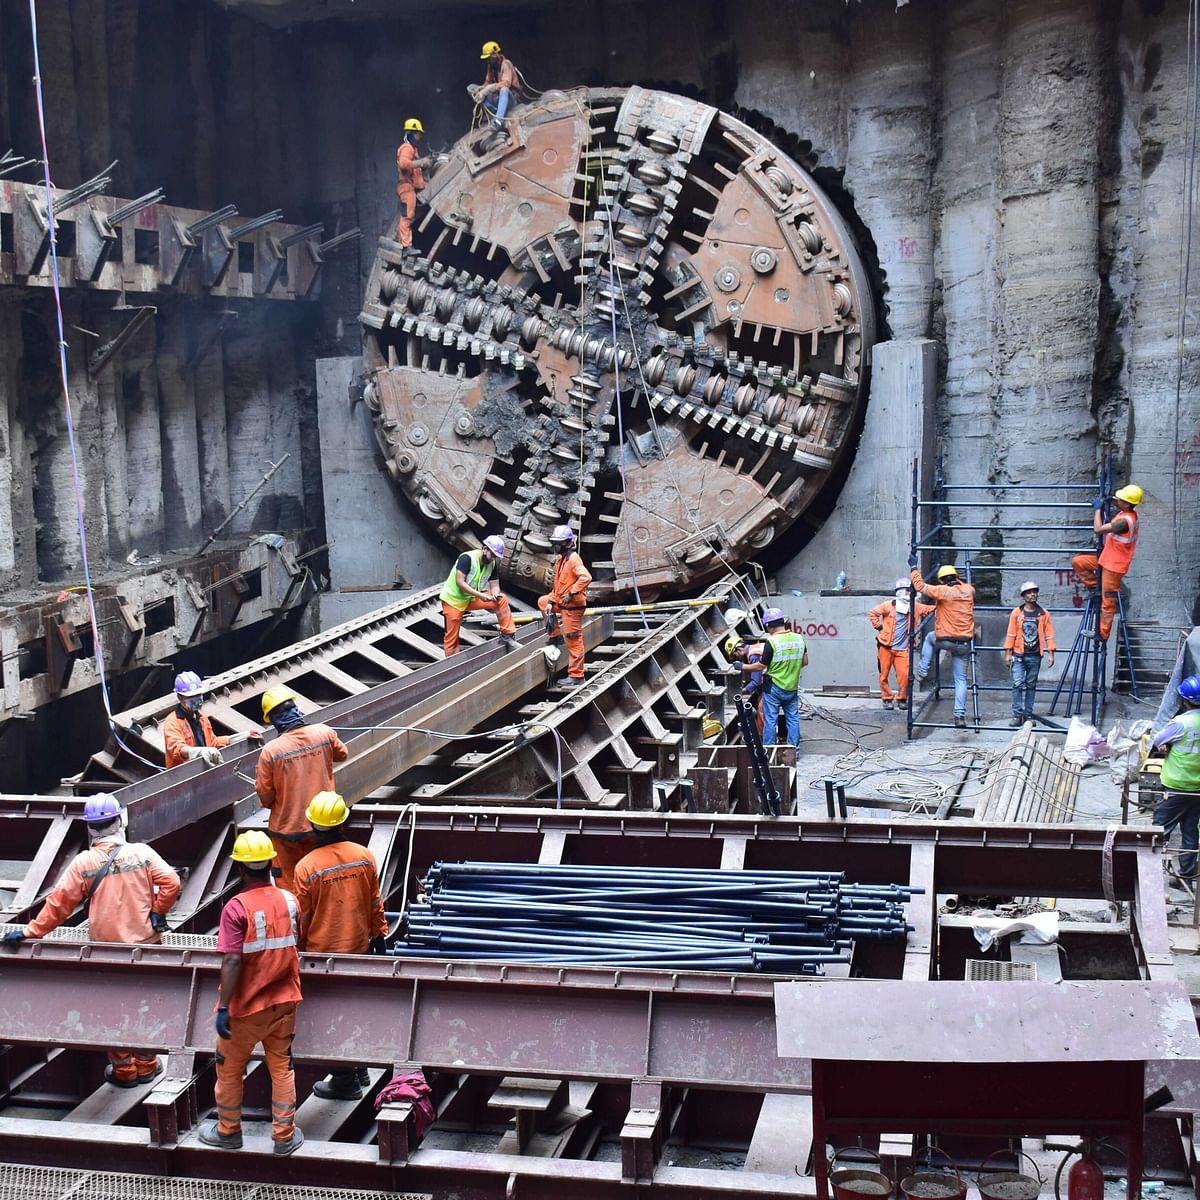 Mumbai Metro 3 project: 9 more breakthroughs to complete 100% tunnelling, says MMRC